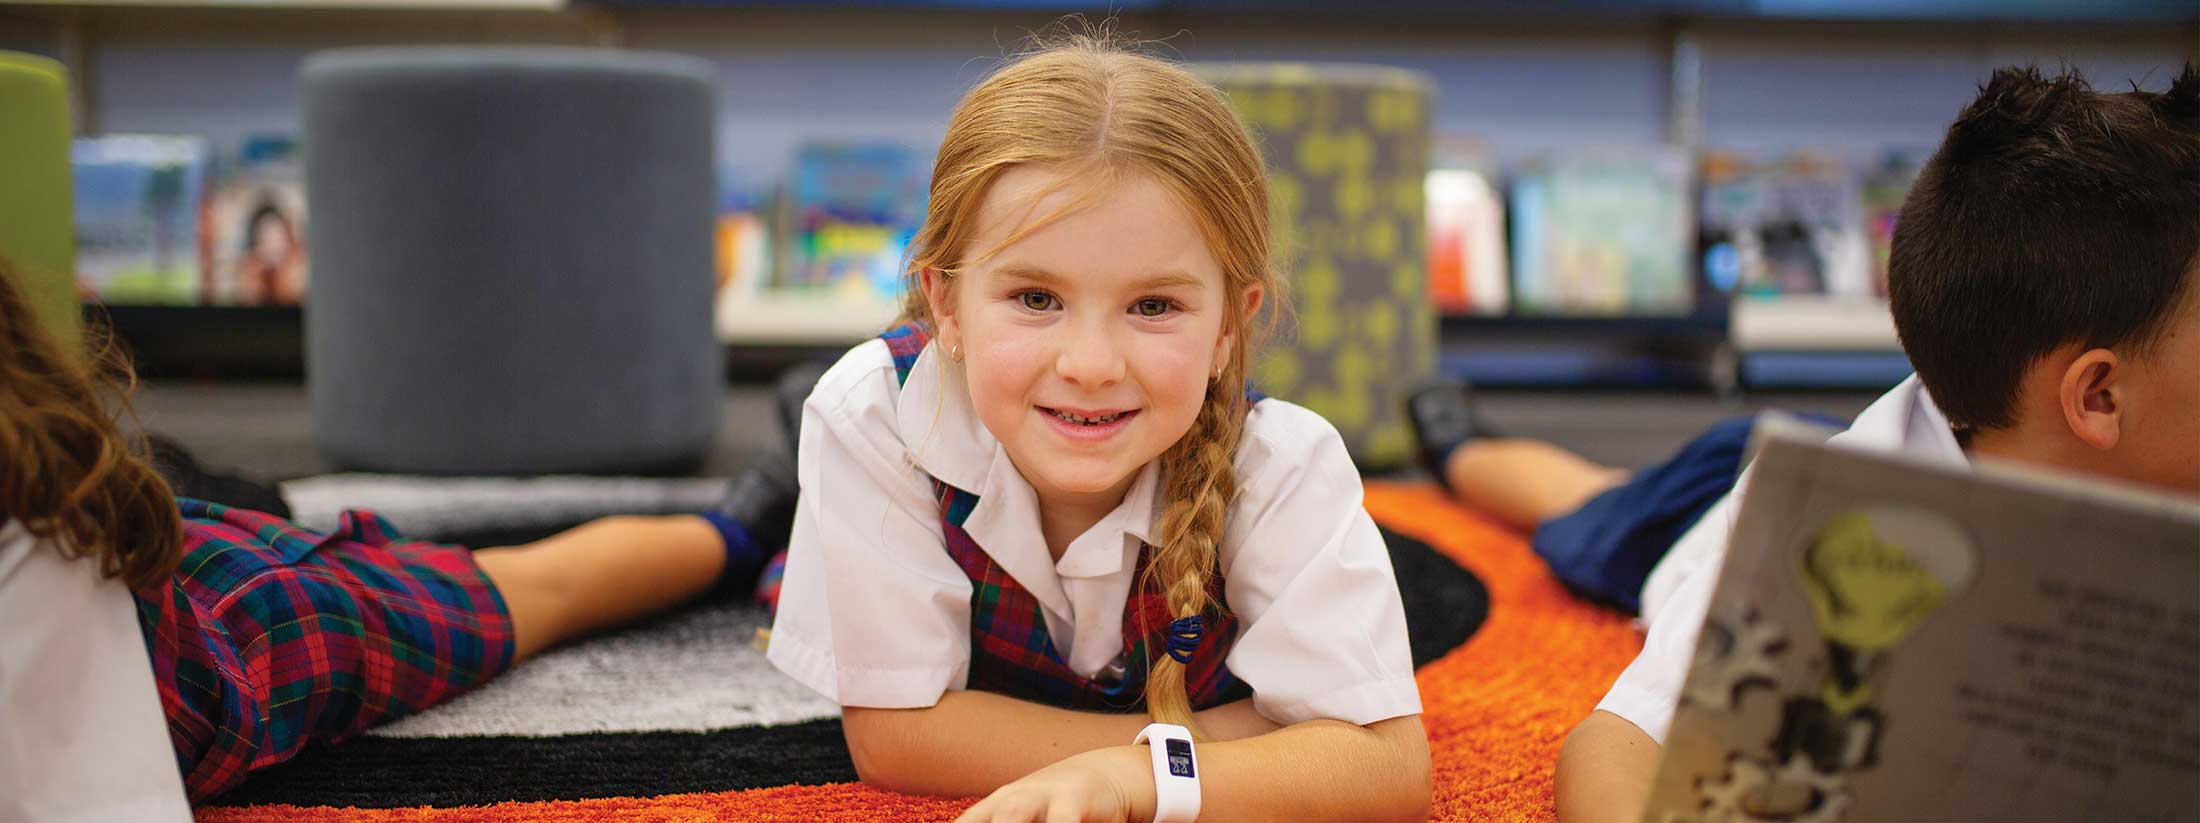 pre-school information form charlton christian college